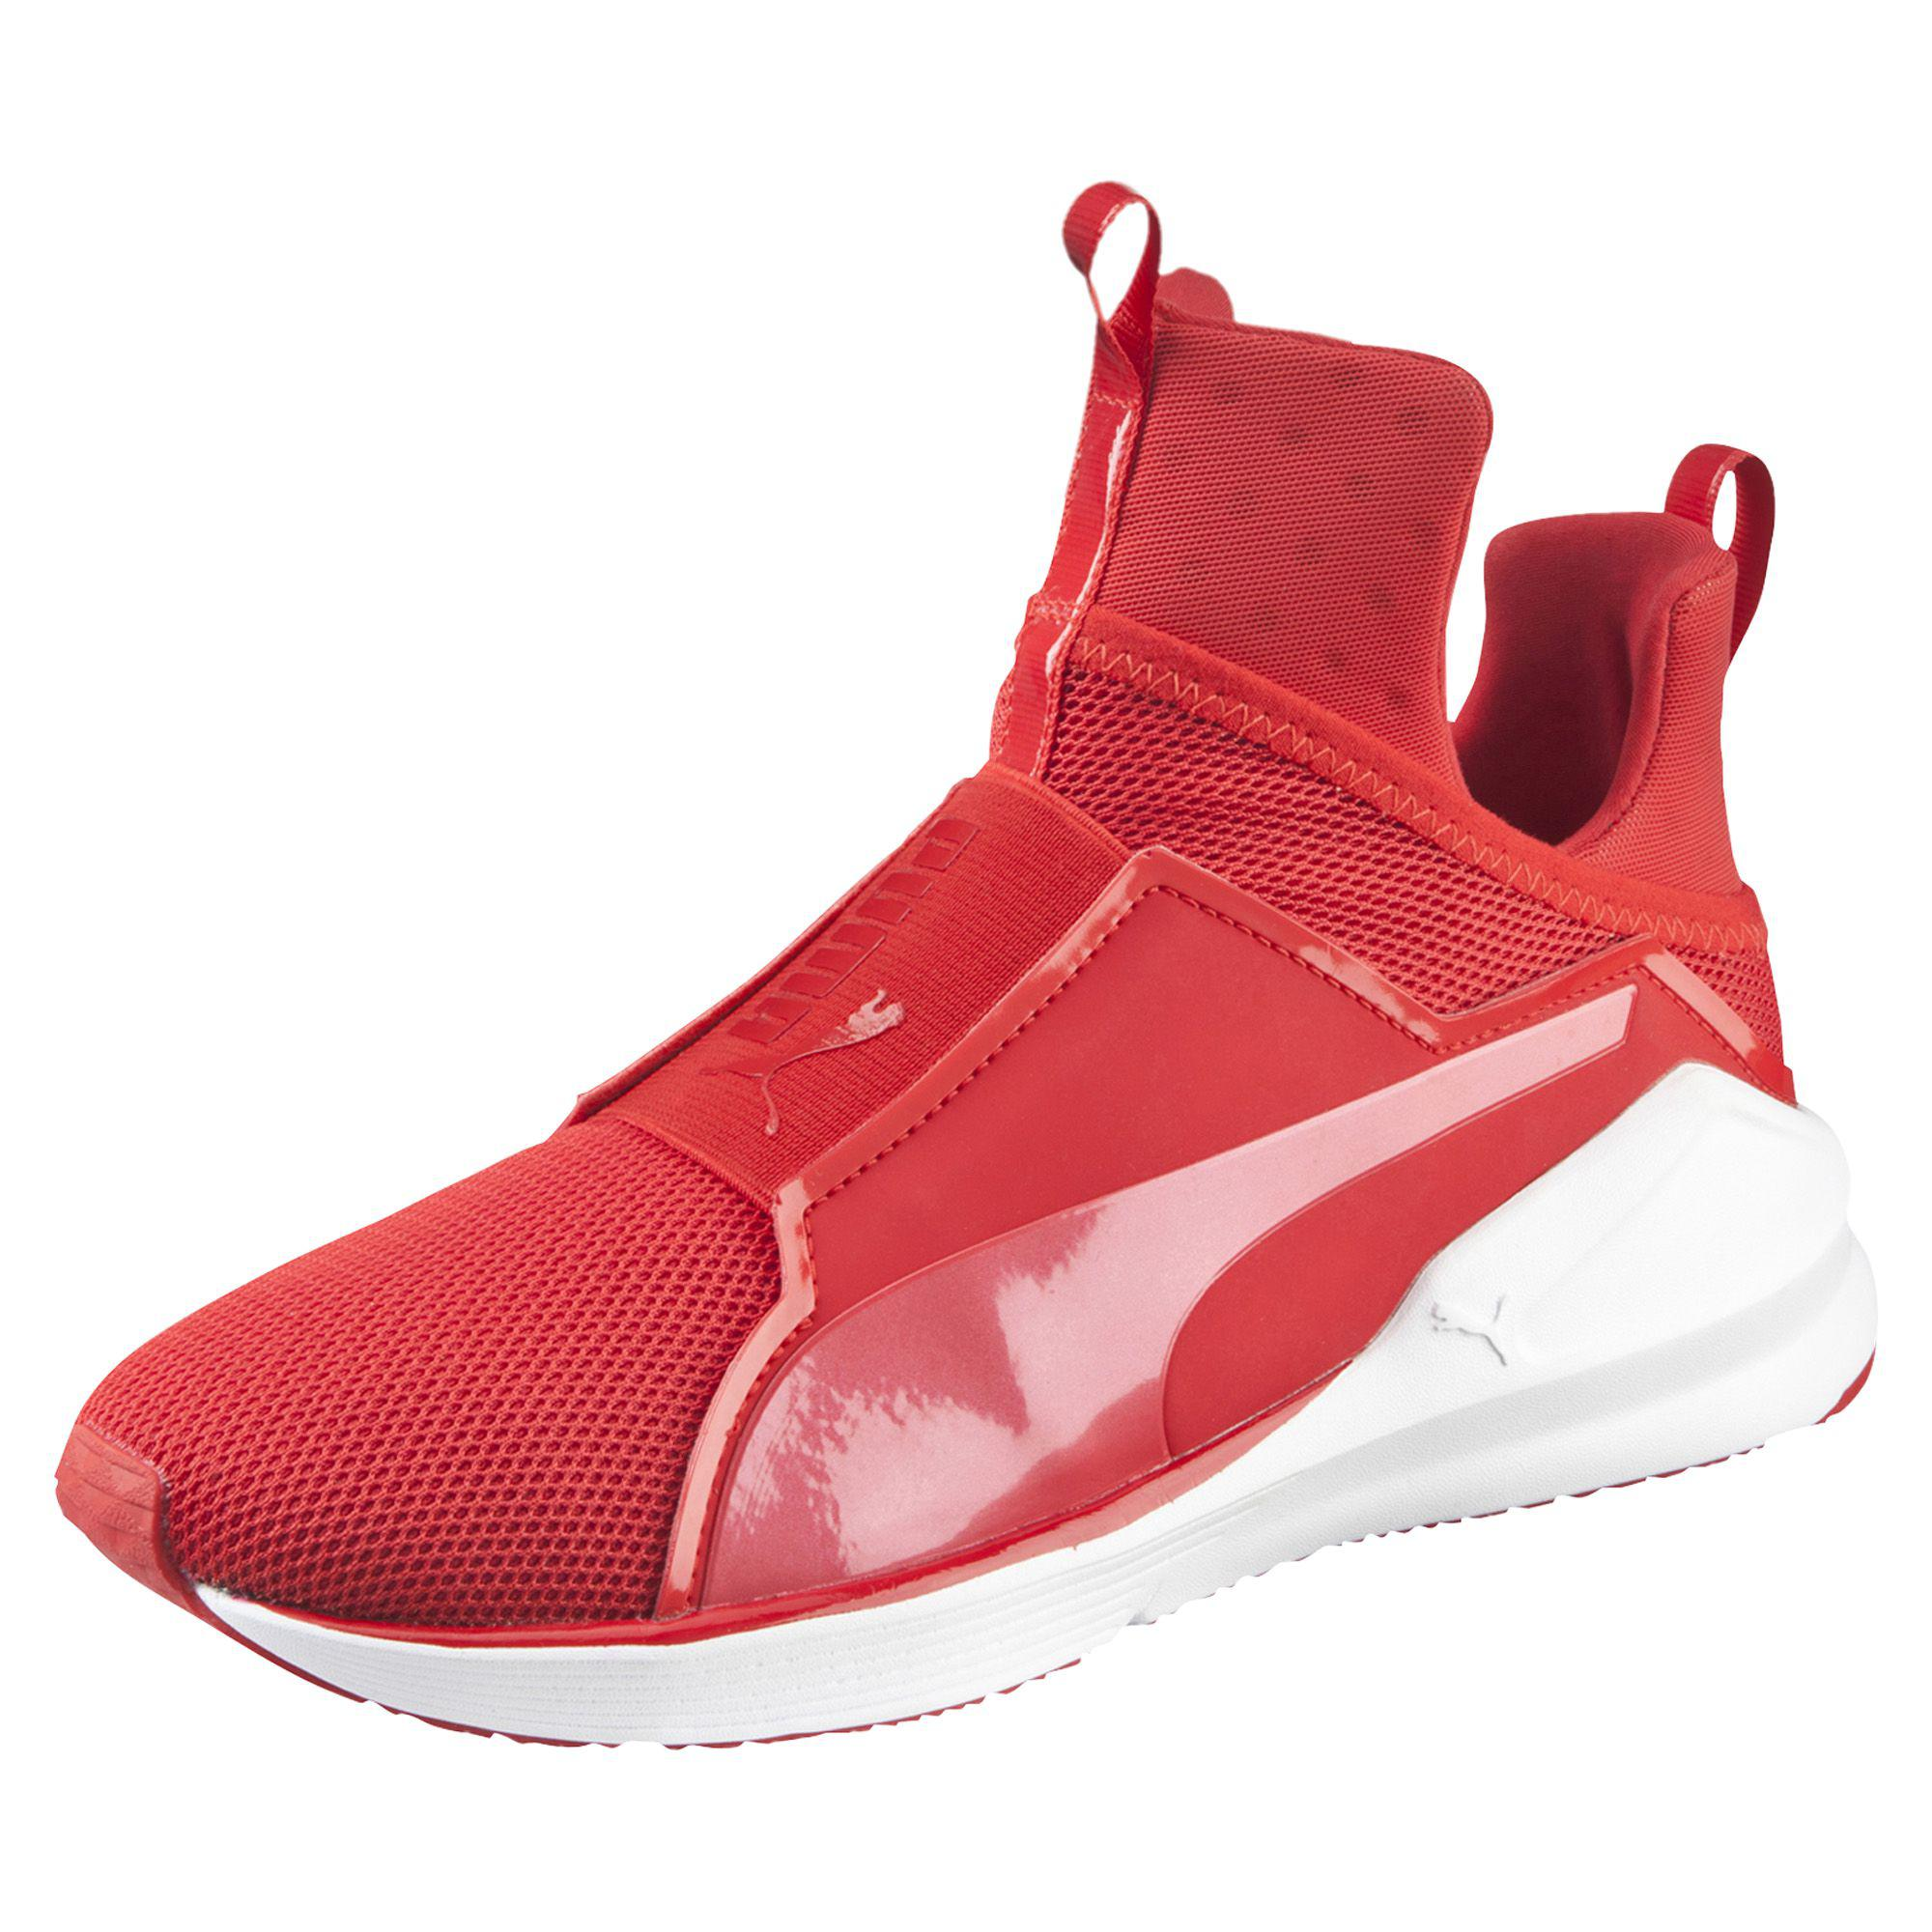 Lyst - PUMA Fierce Core Women s Training Shoes in Red 20b466580